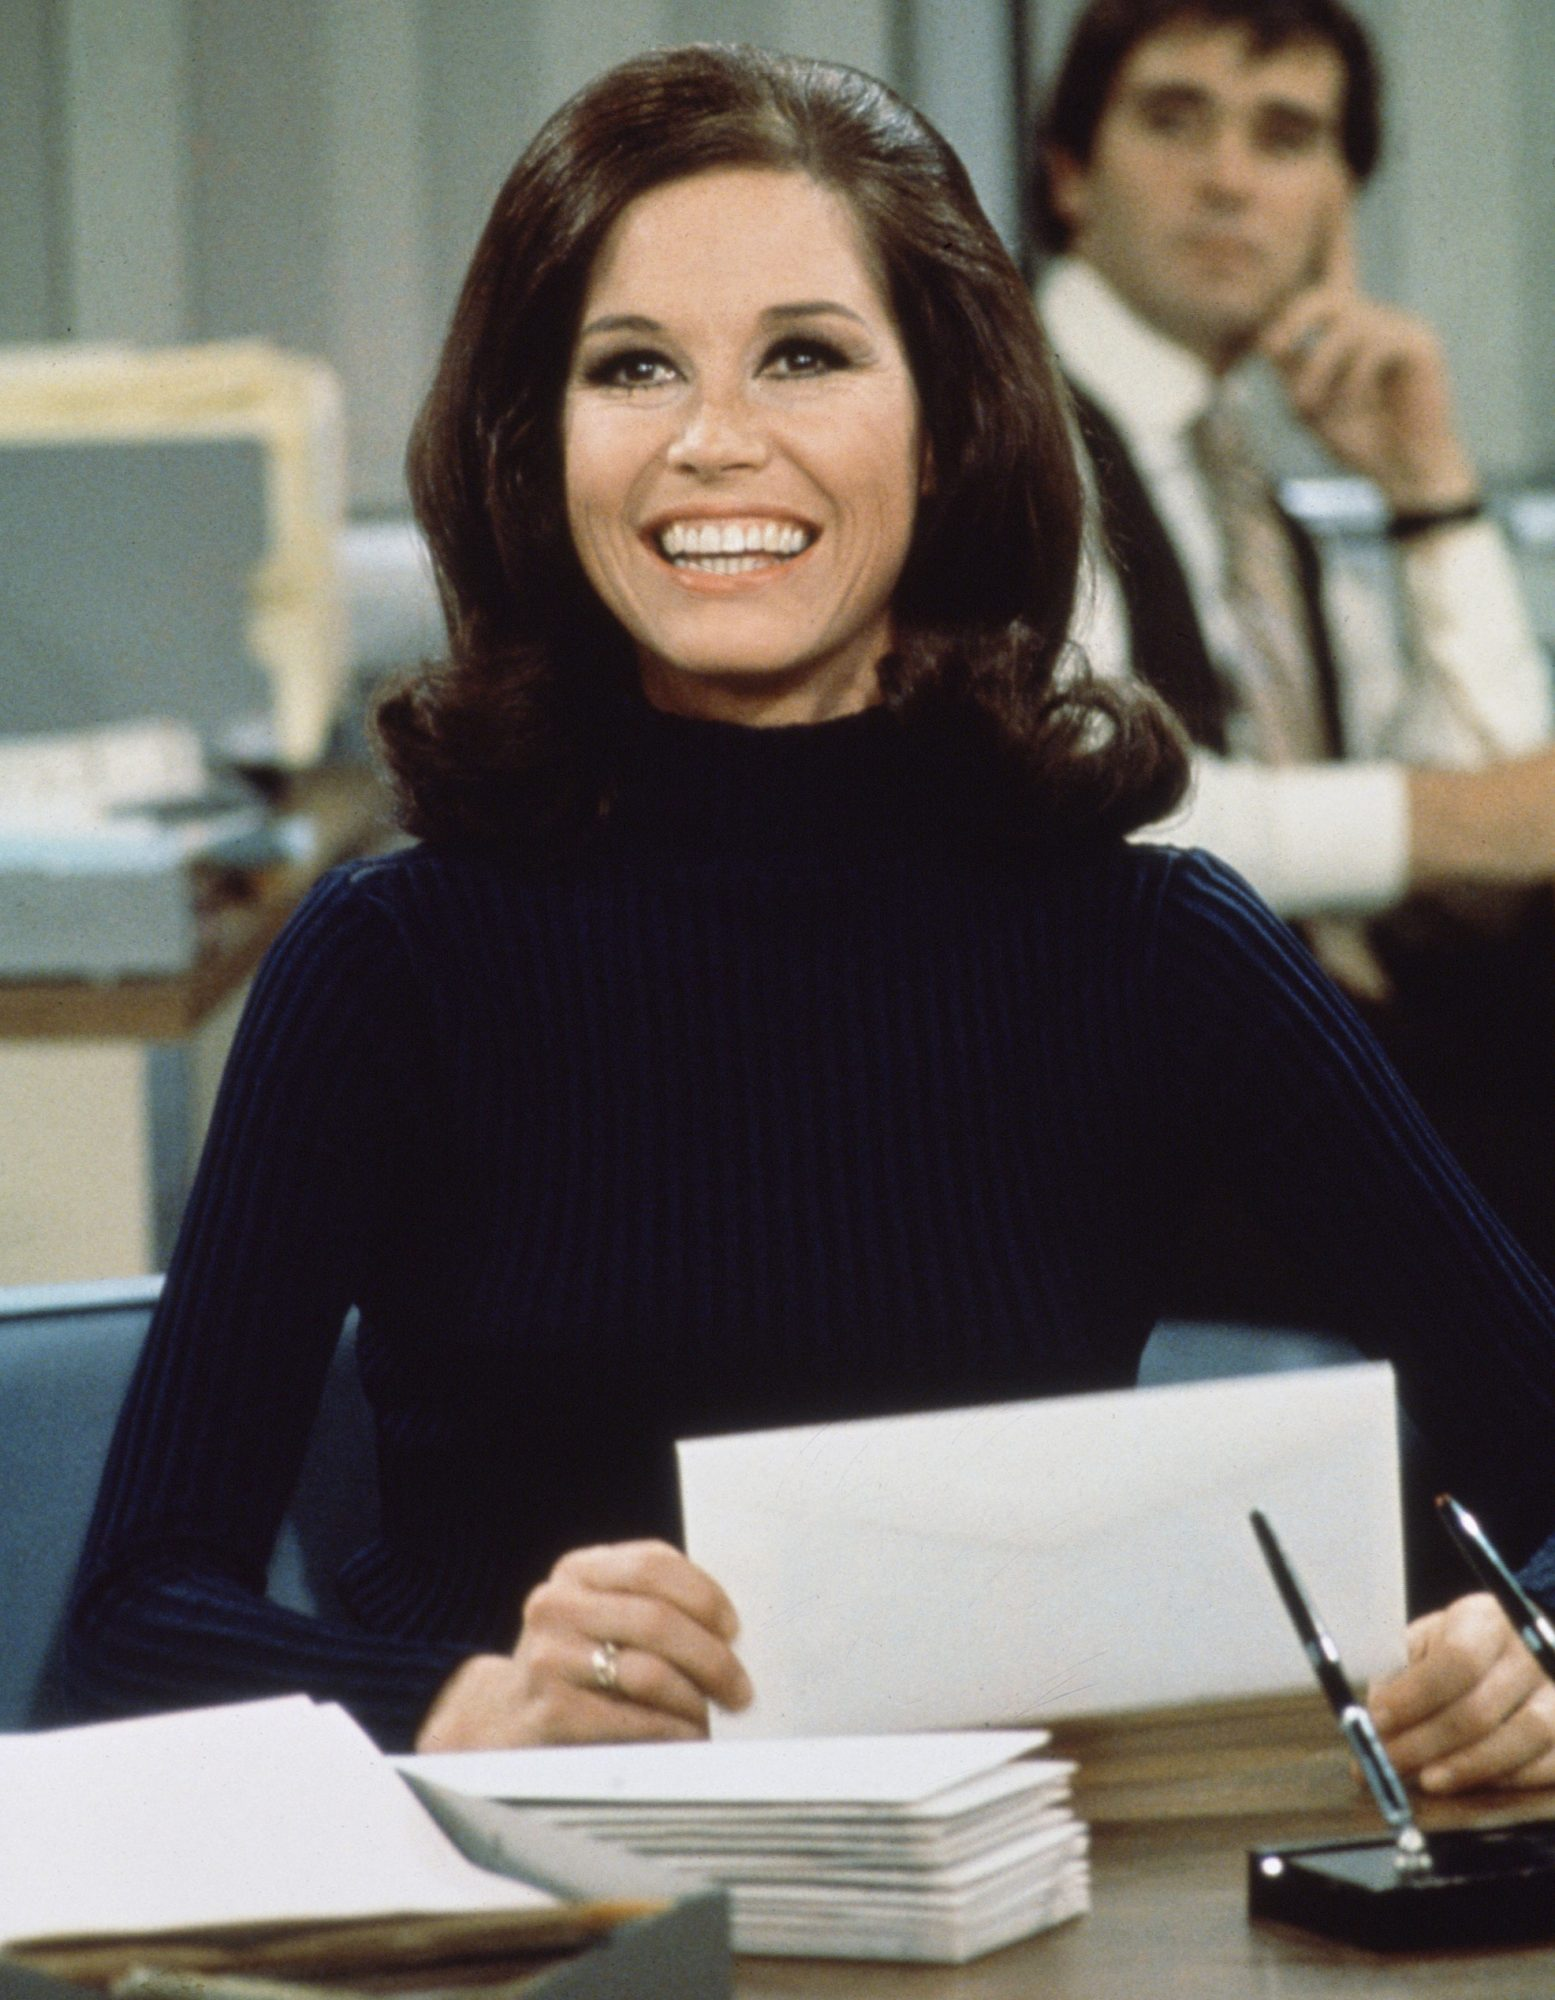 Let These Iconic Mary Tyler Moore Looks Inspire Your 9-to-5 Style